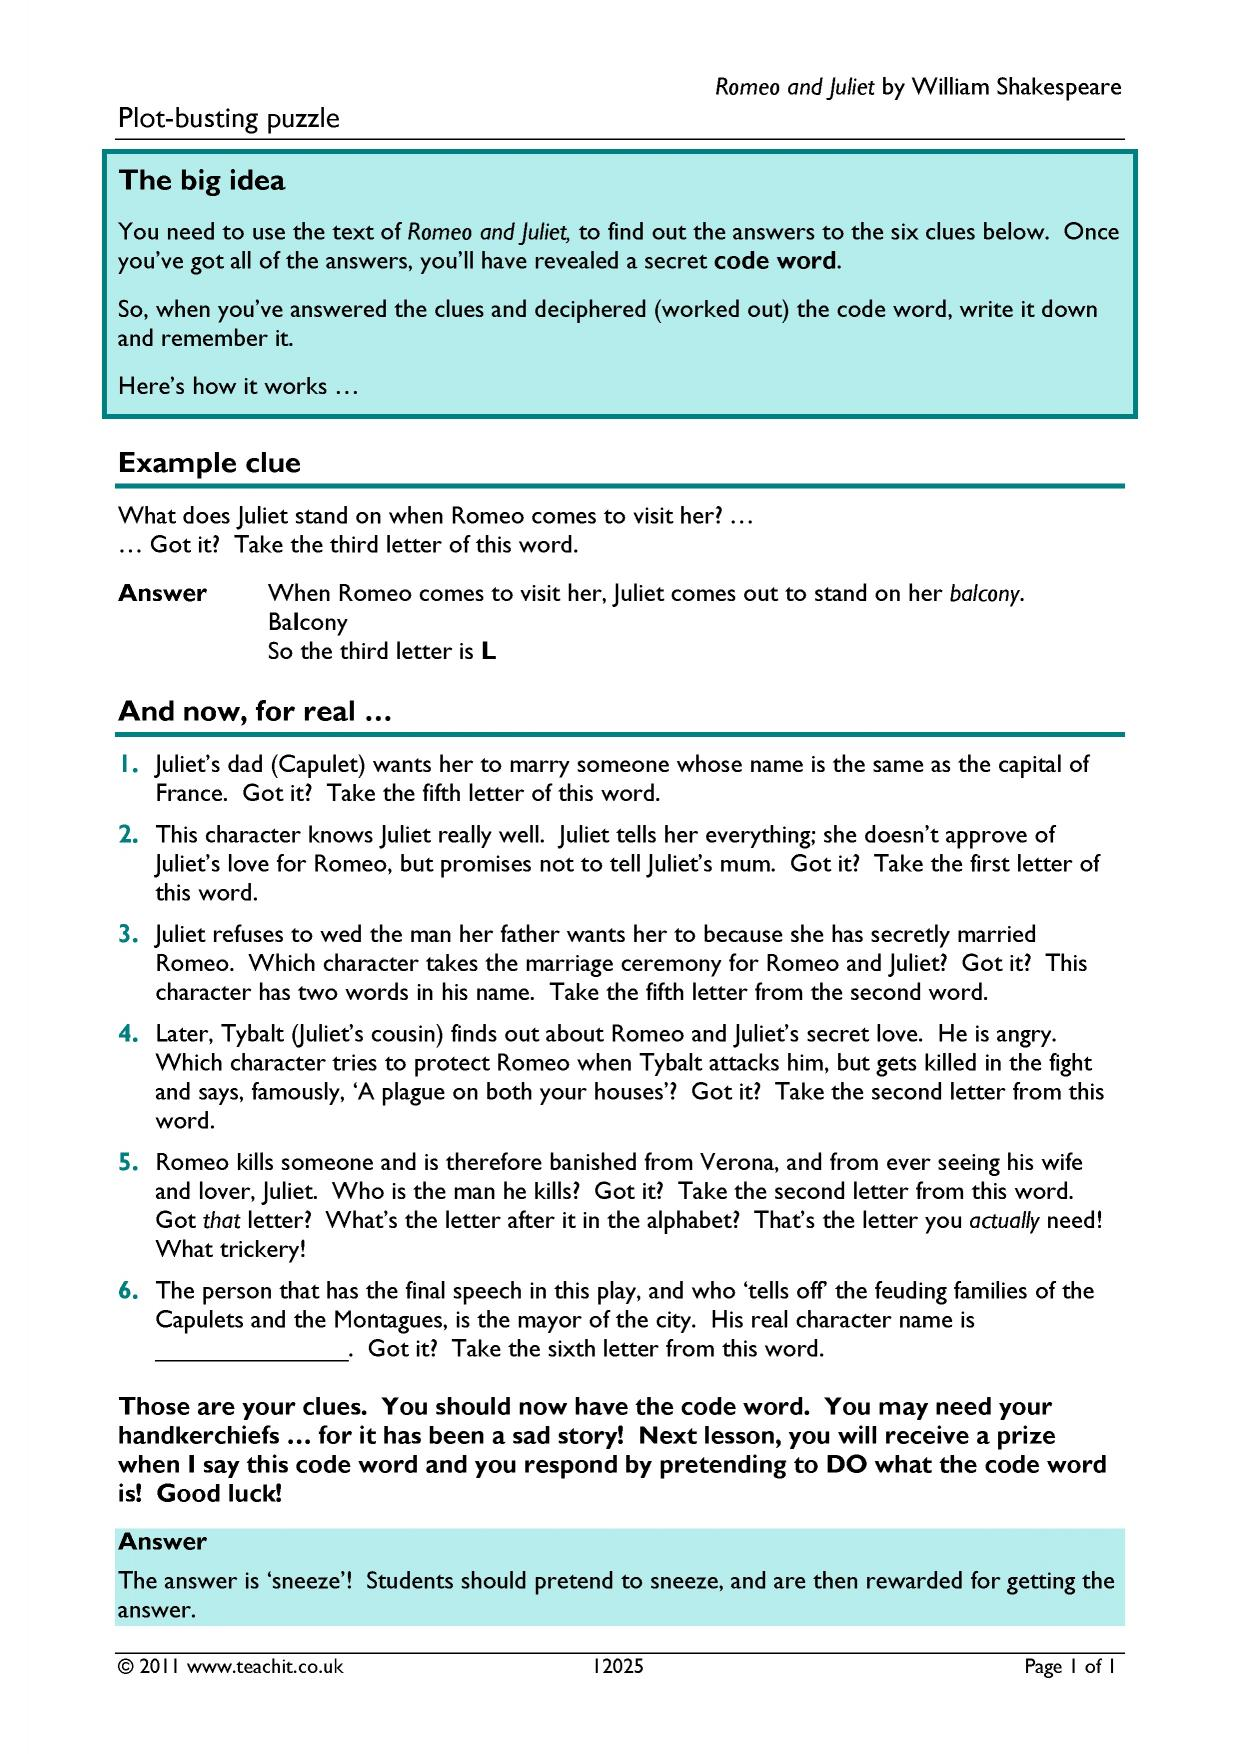 romeo and juliet ks3 plays key stage 3 resources 7 preview